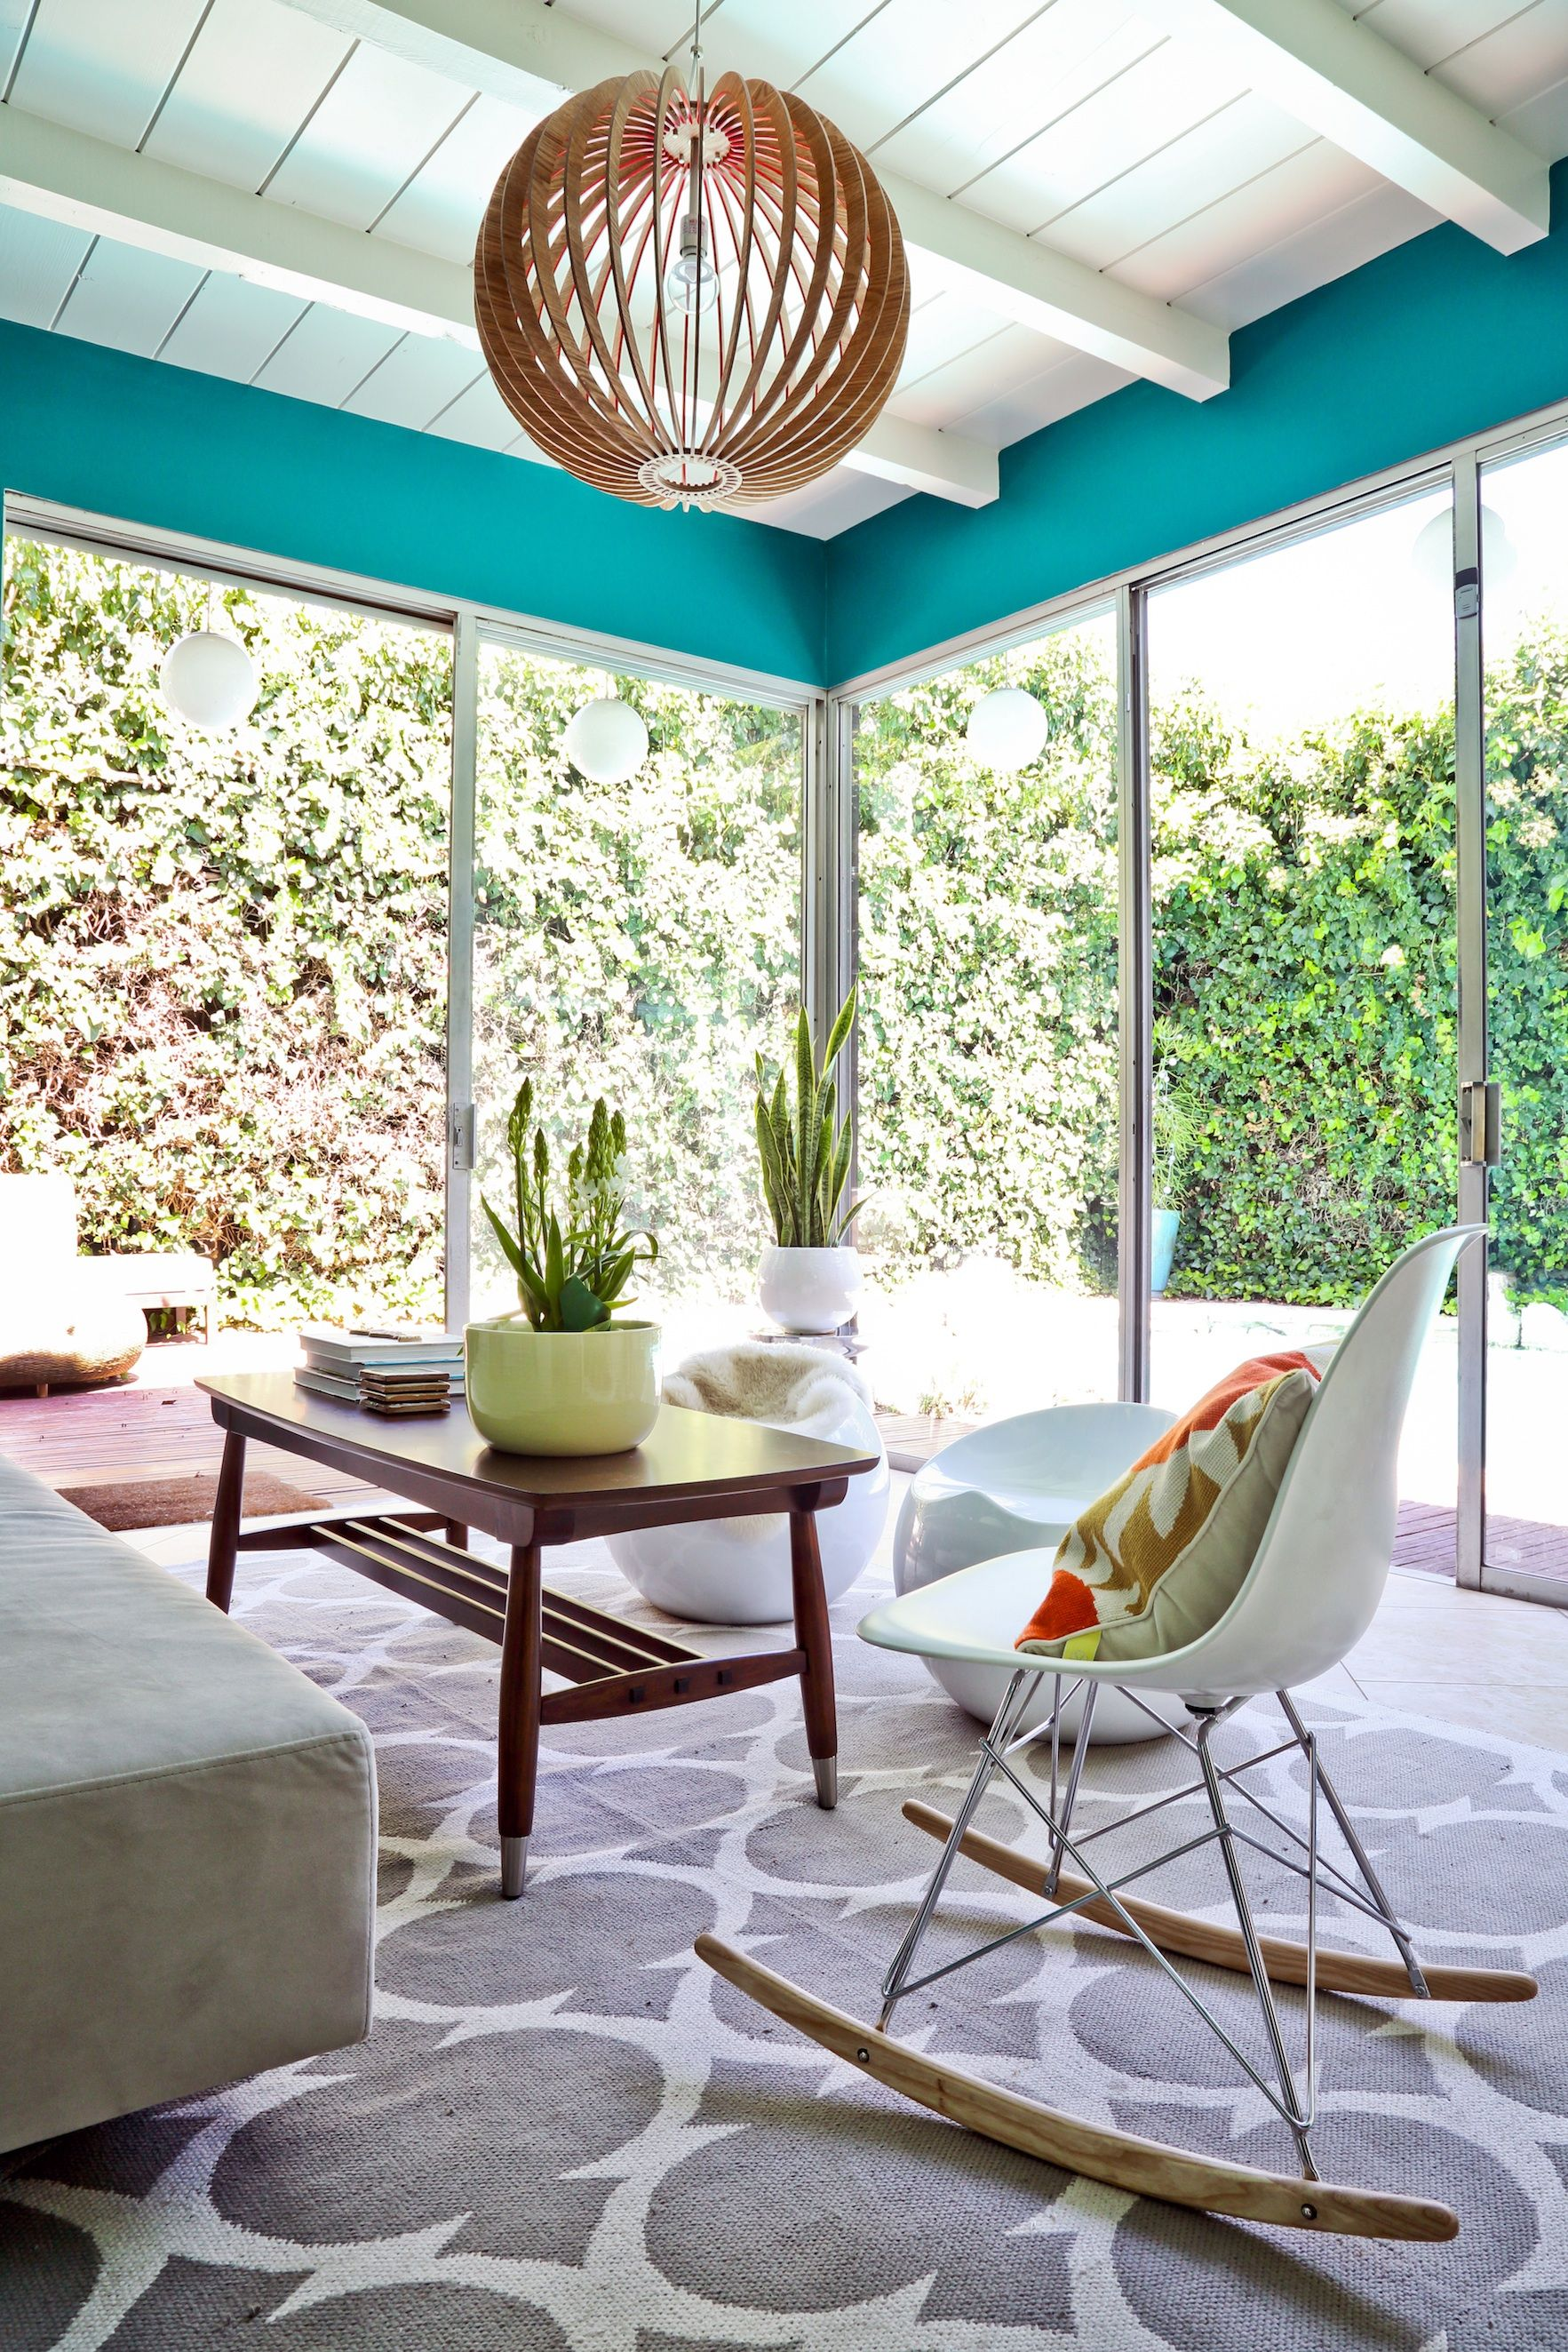 Vintage Living Room Ideas For Small Spaces: Retro Sun Room Just In Time For The Warm Weather! Interior